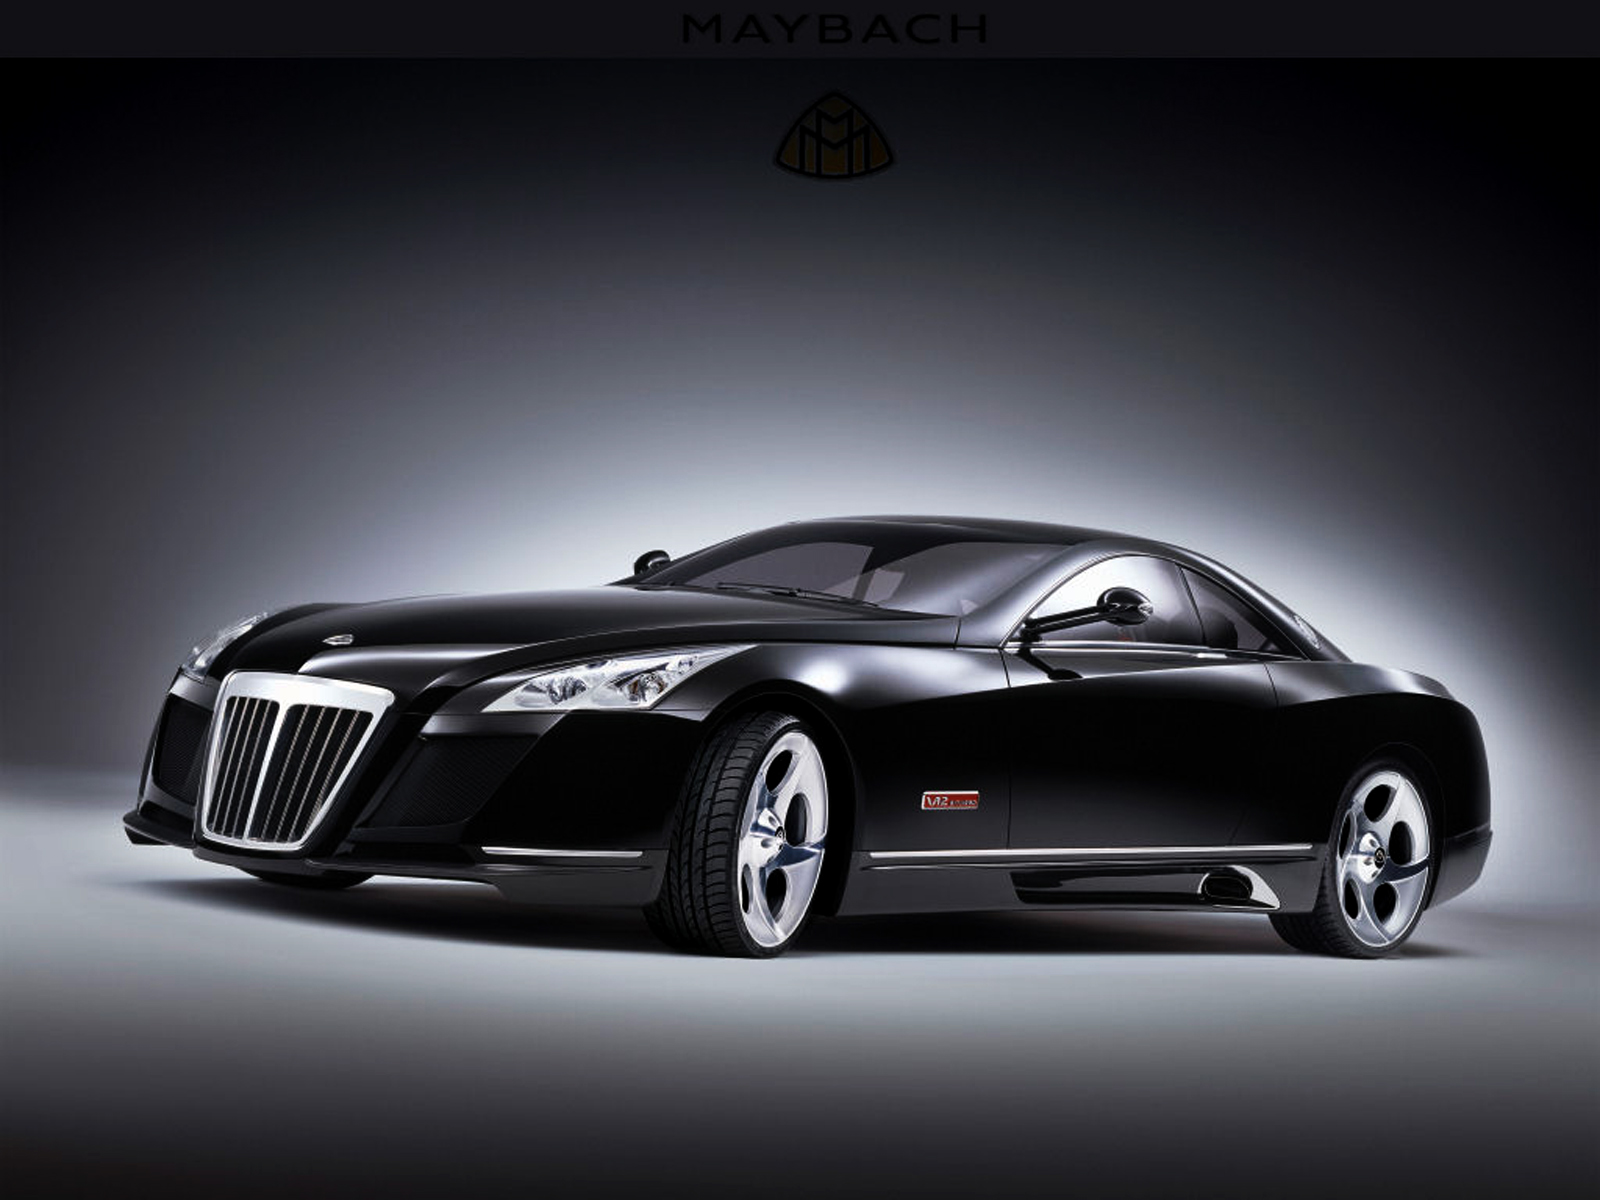 Best 41 Maybach Exelero Wallpaper on HipWallpaper Maybach 1600x1200